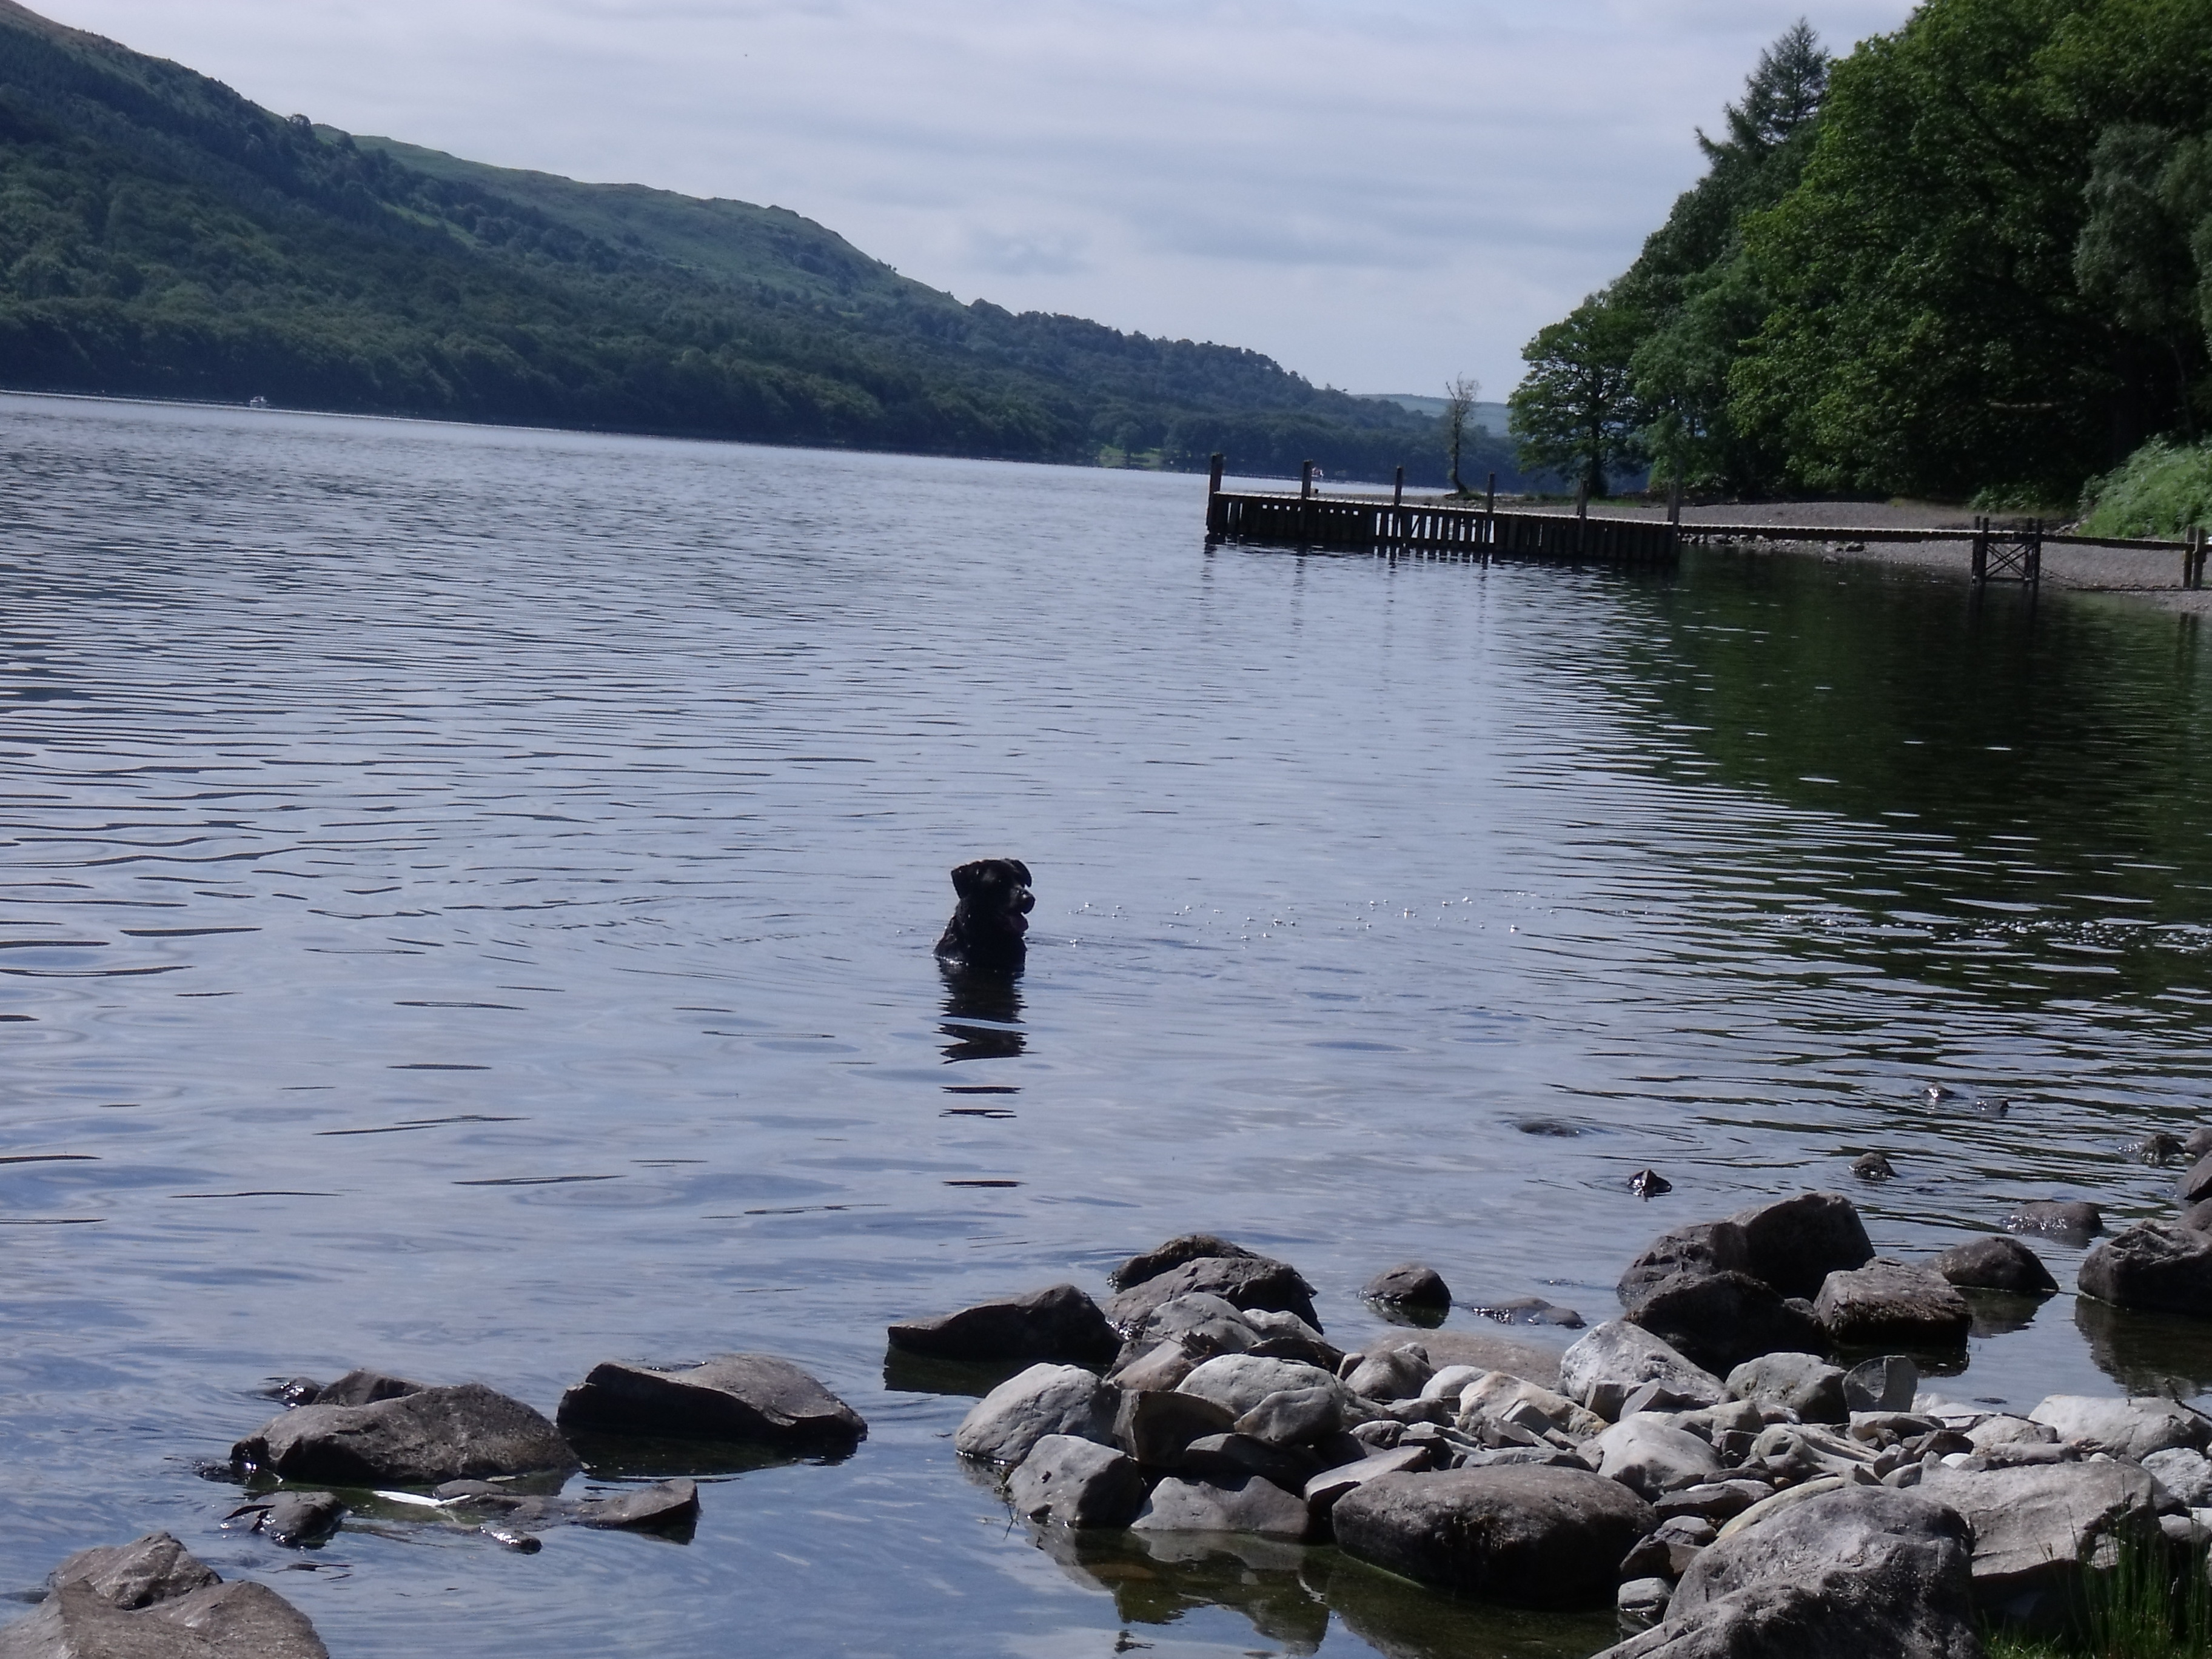 """Coniston Water is the straightest  of the lakes, which is what attracted Donald Campbell to attempt the world water speed record in his boat, the bluebird. Coniston was also the inspiration for """"Swallows and Amazons""""."""